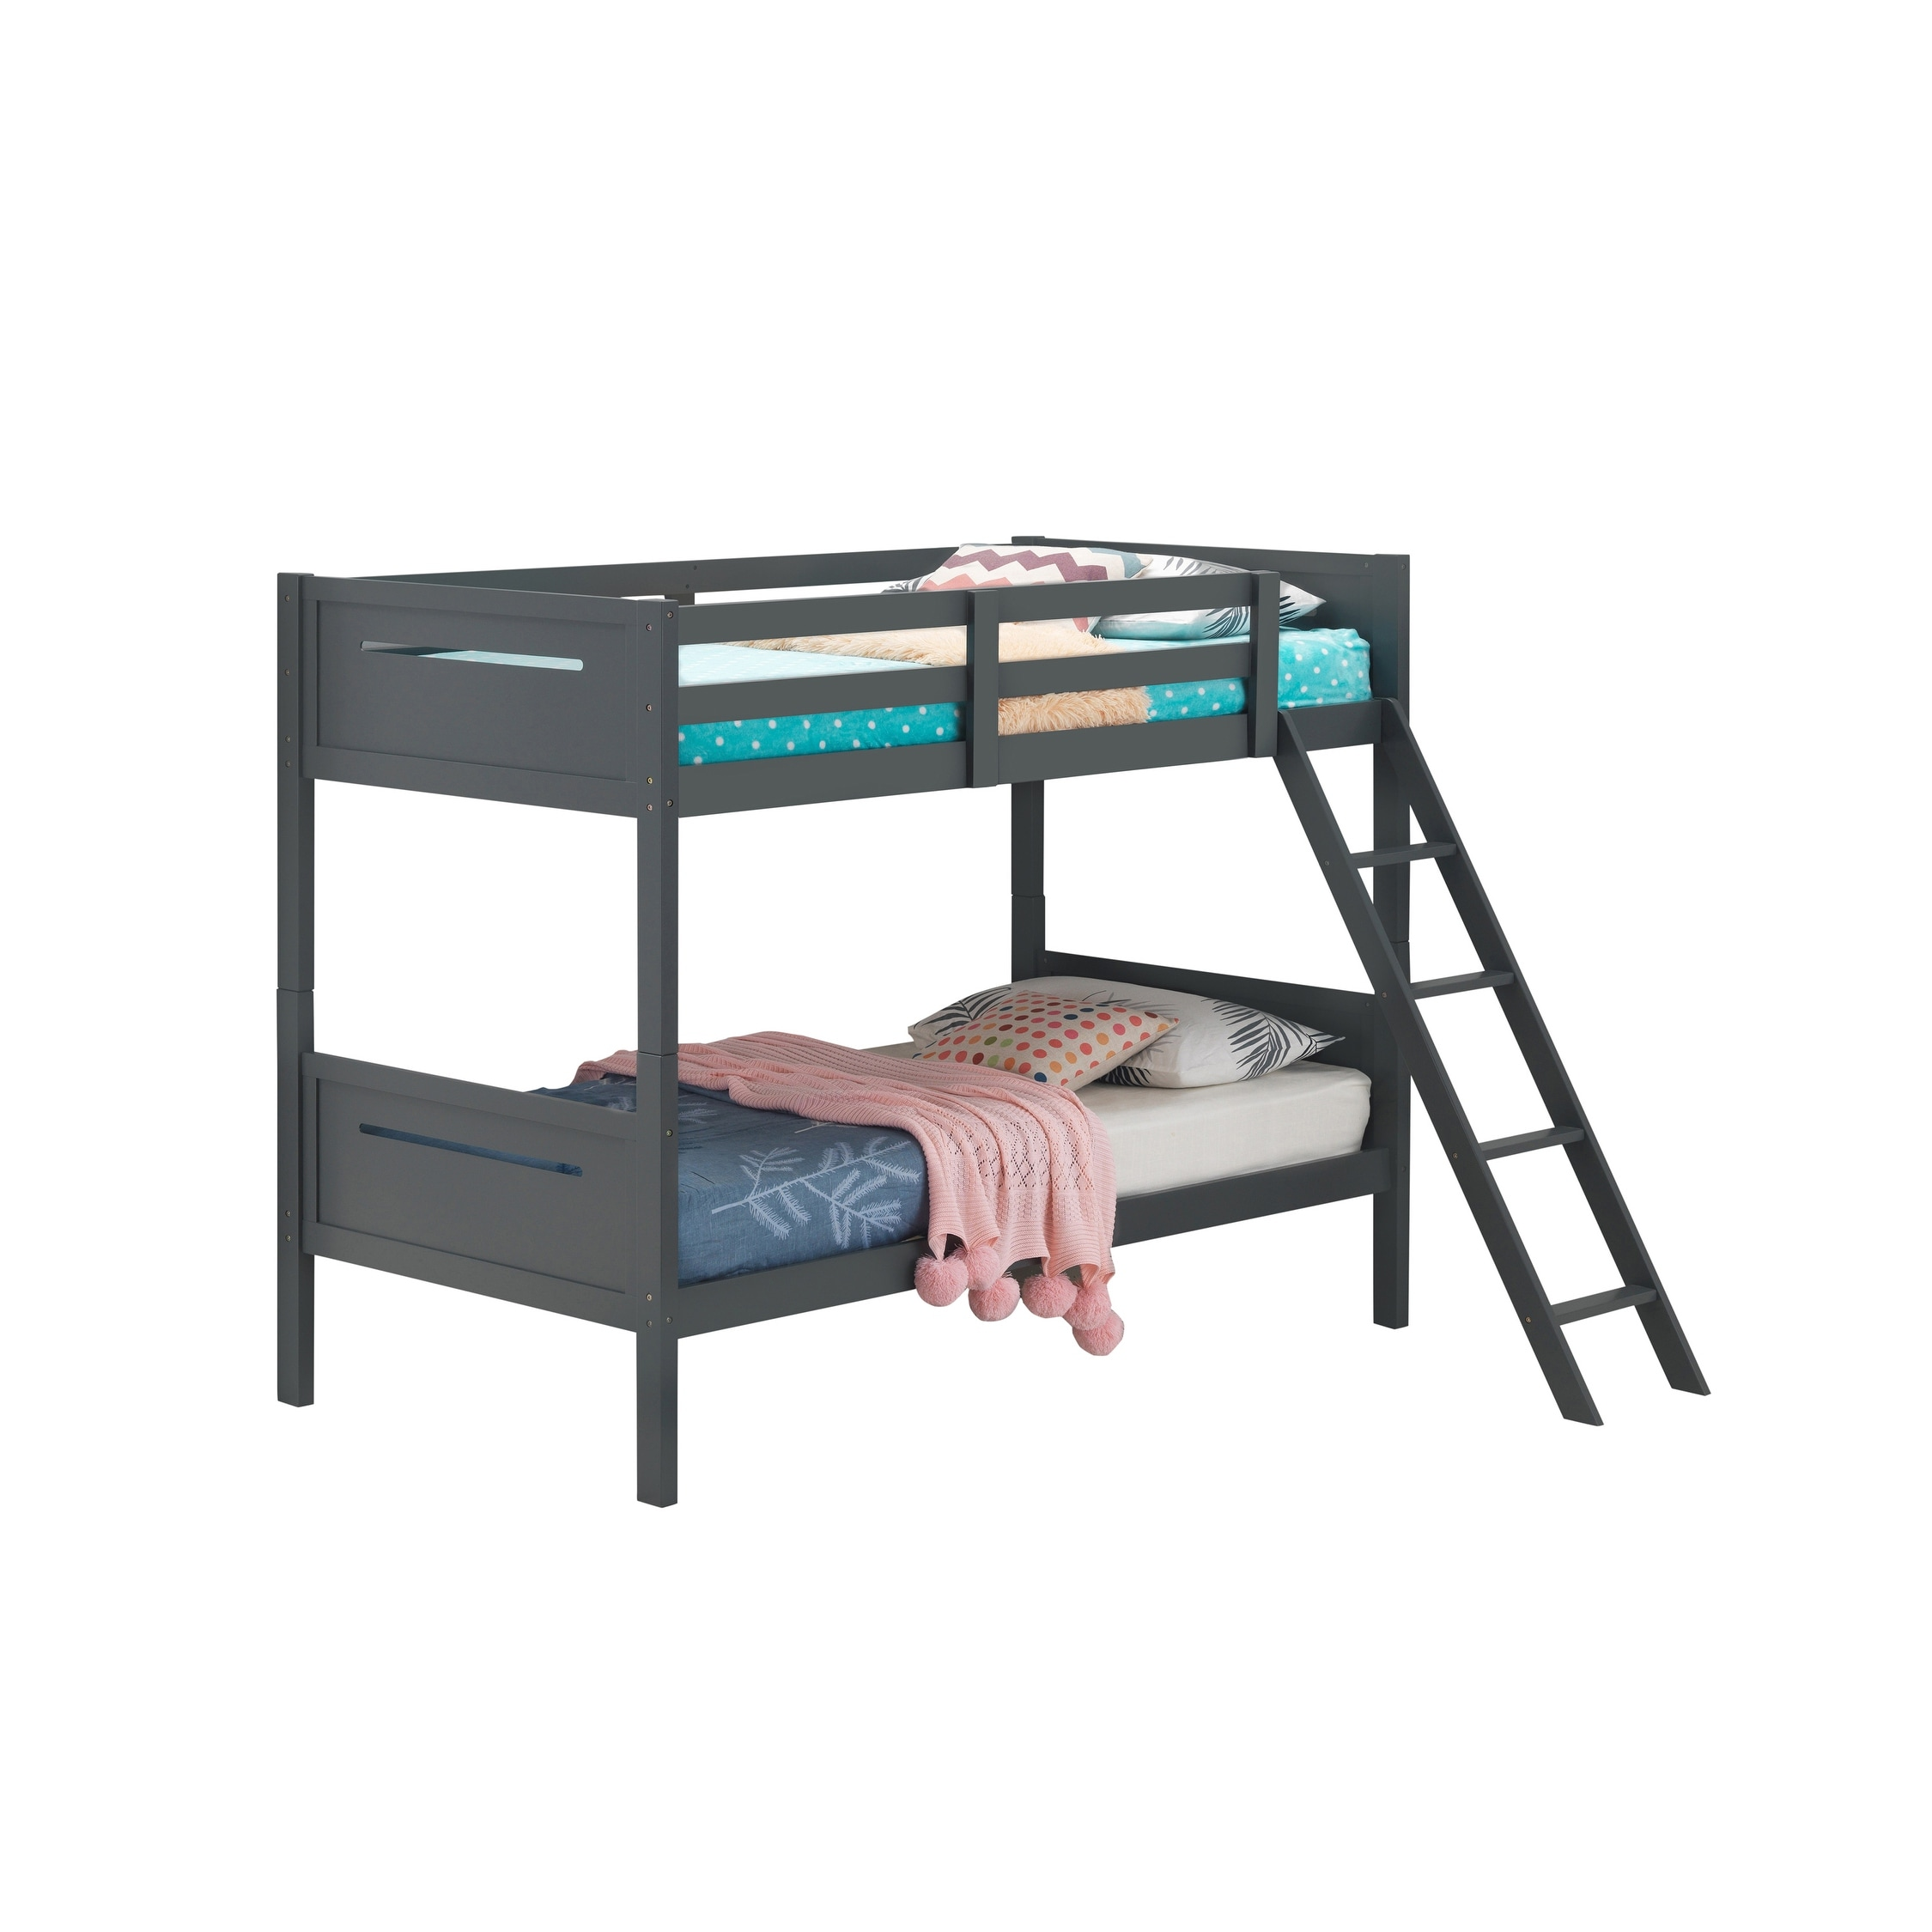 Image result for black twin bunk beds